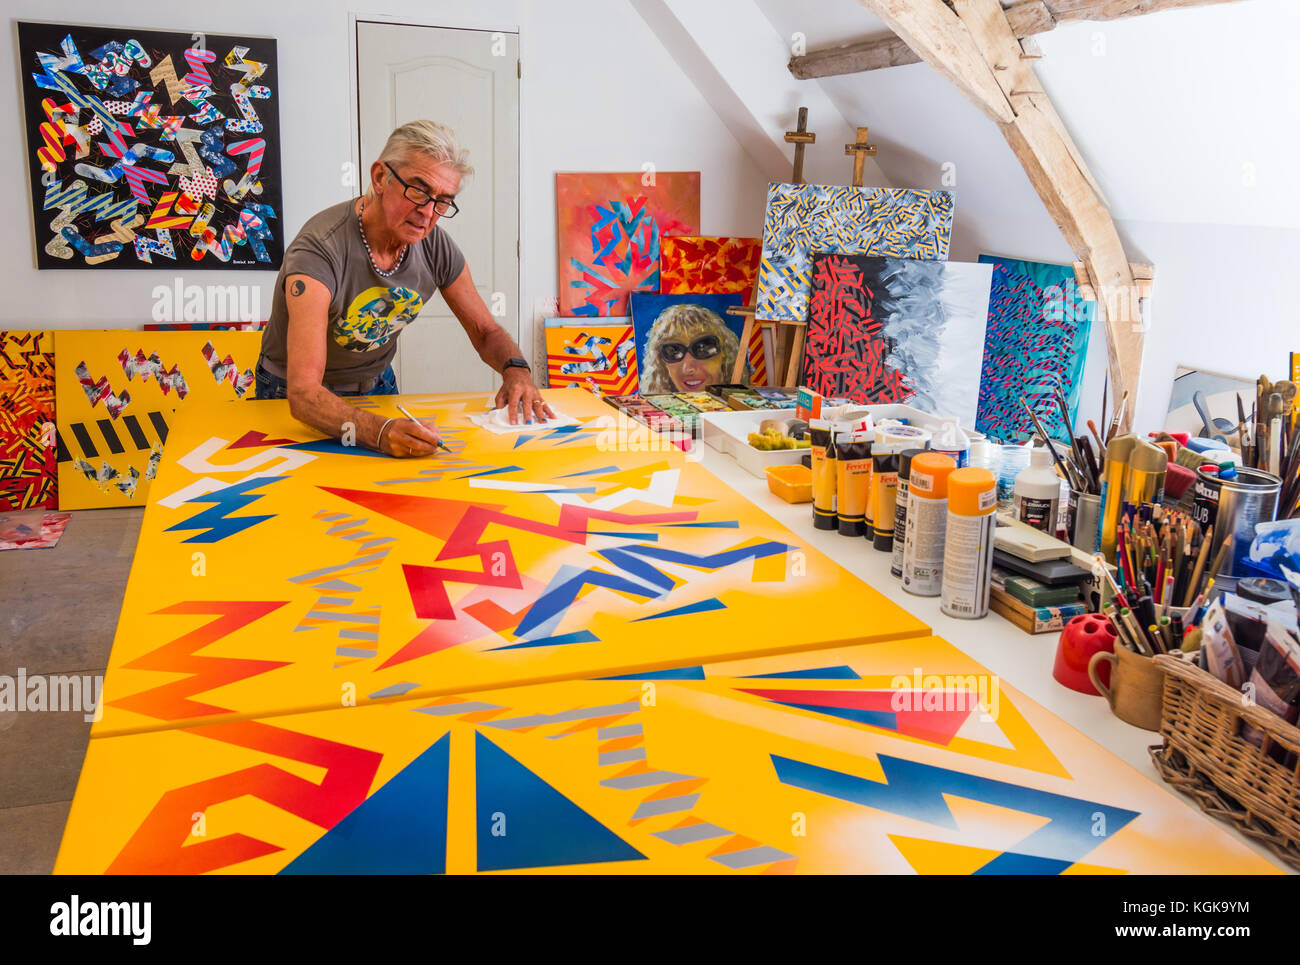 Artist Ed Buziak creating abstract artwork in studio - France. - Stock Image